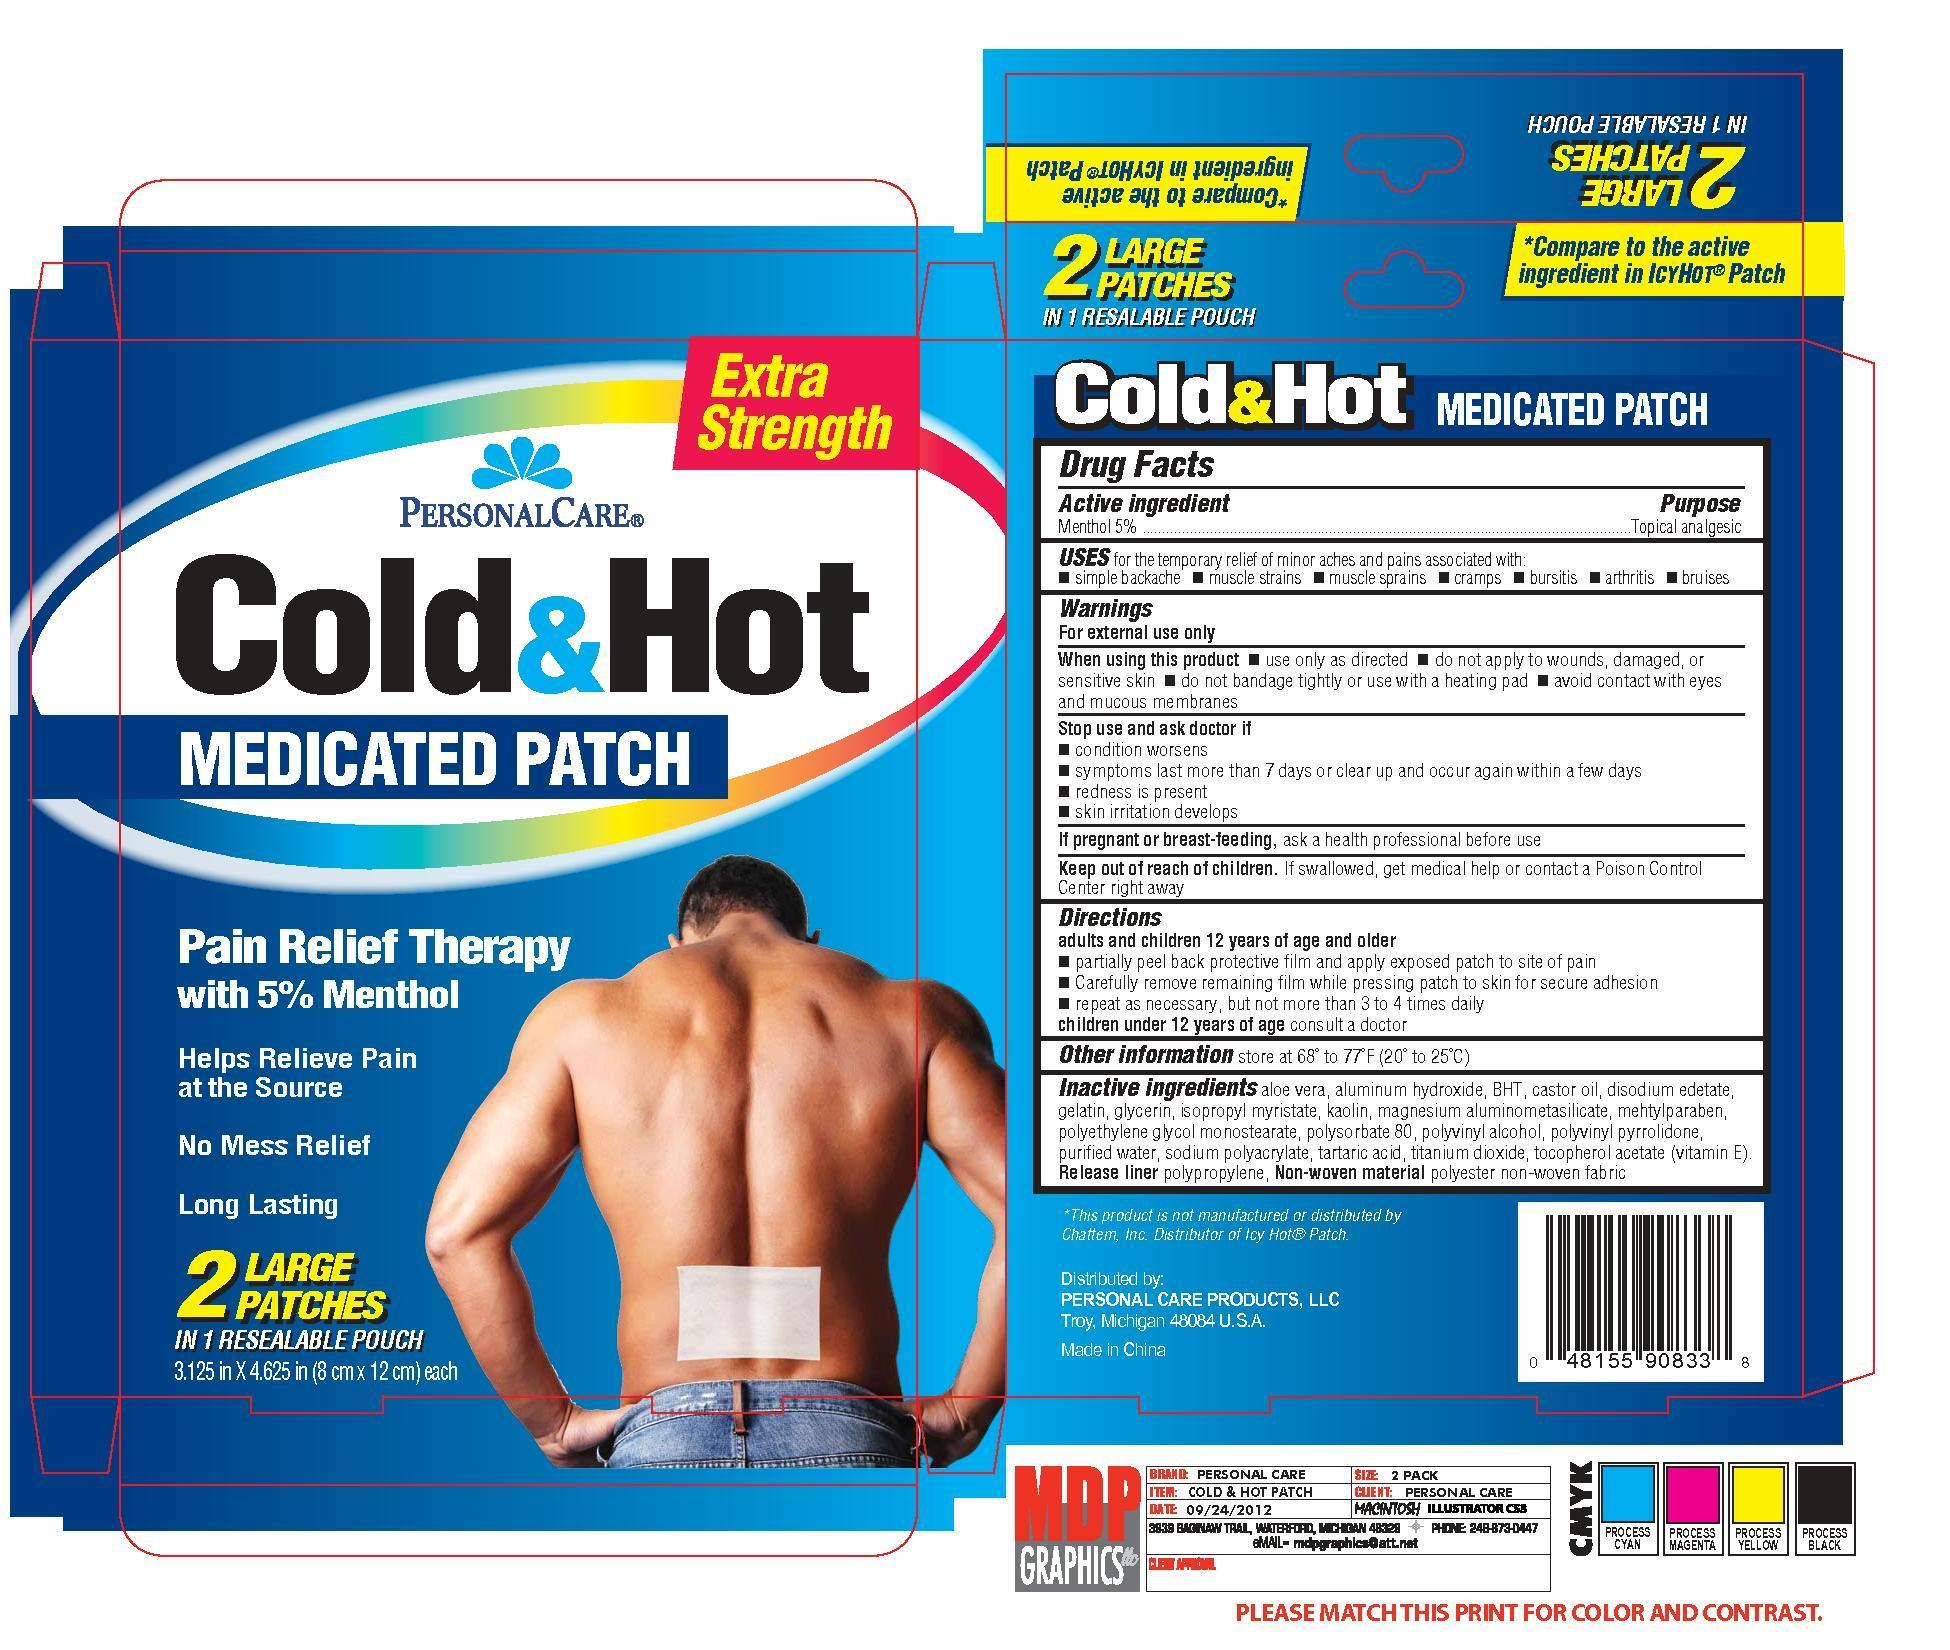 Personal Care Extra Strength Cold Hot (Menthol) Patch [Personal Care Products, Llc]